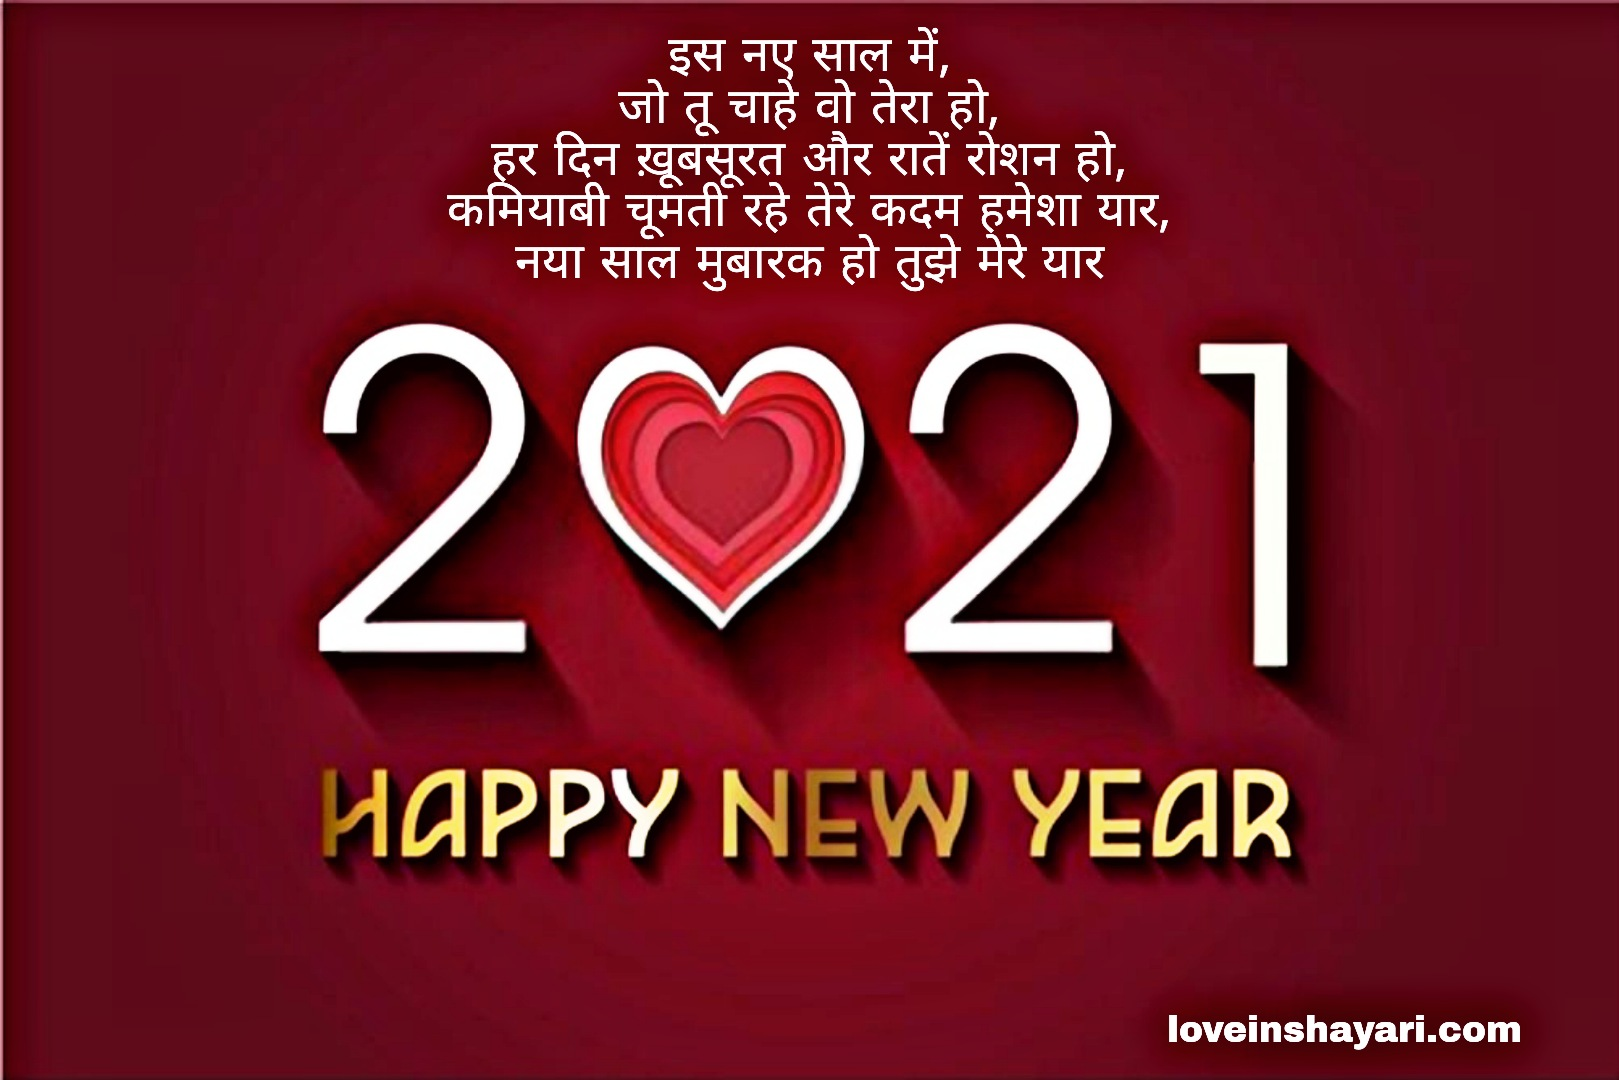 Photo of Happy New Year 2021 shayari wishes quotes sms